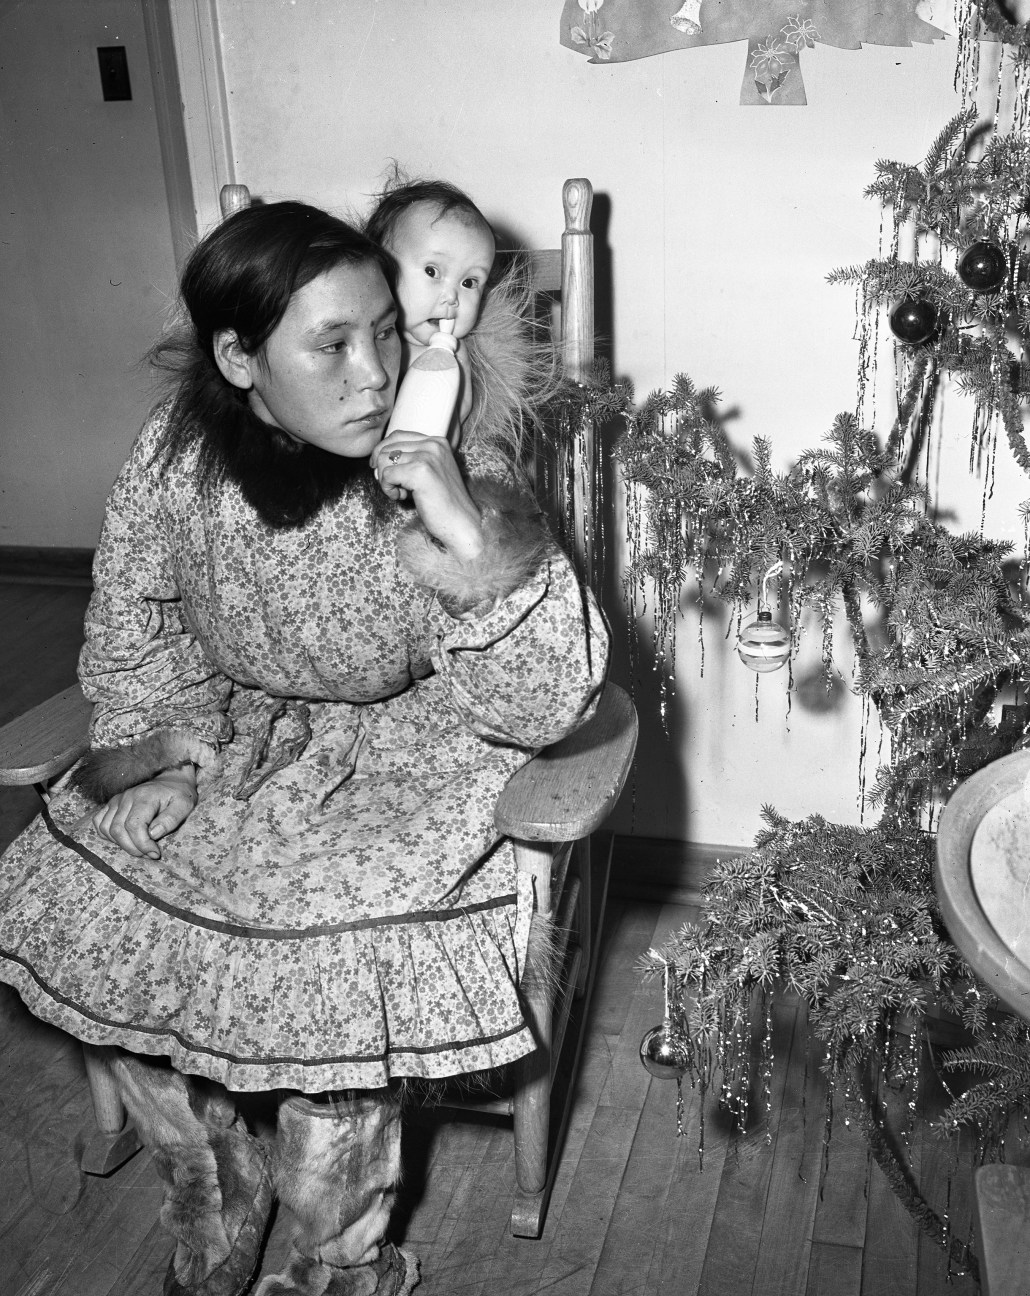 Martha Apatok and her six-month-old daughter Ida at the Camsell on December 21, 1950. City of Edmonton Archives